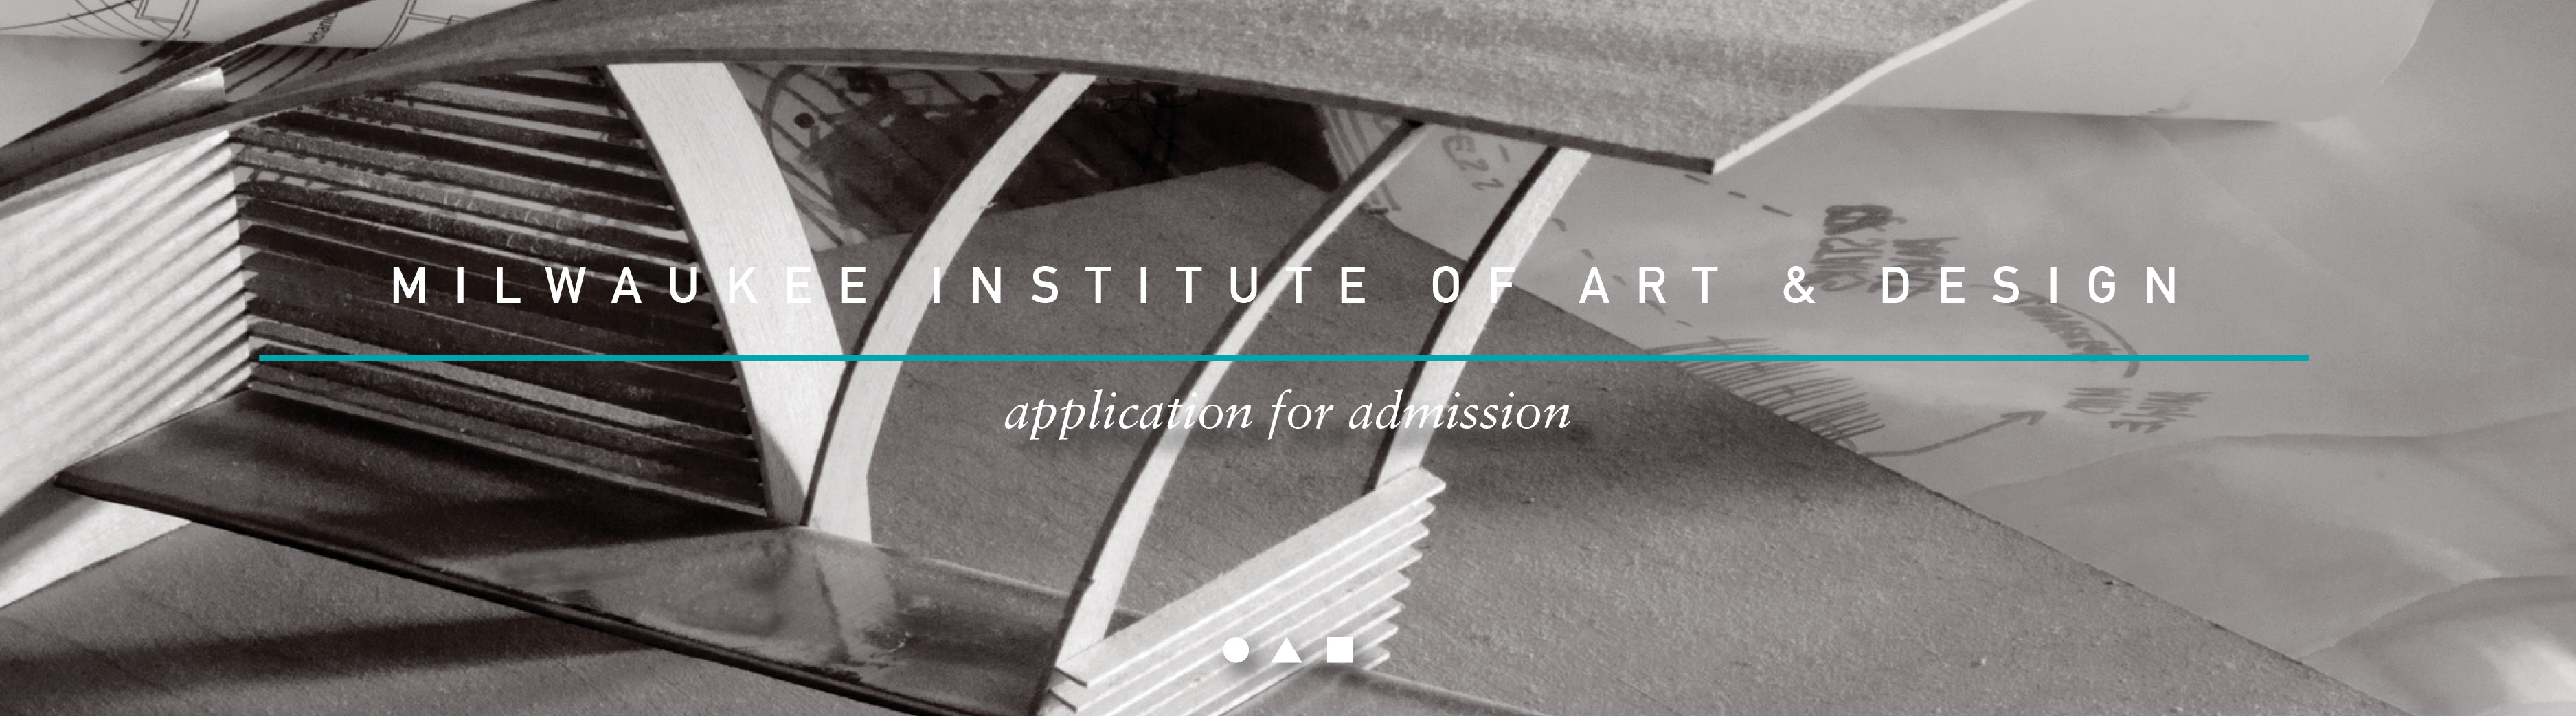 Milwaukee Institute of Art&Design Header Image